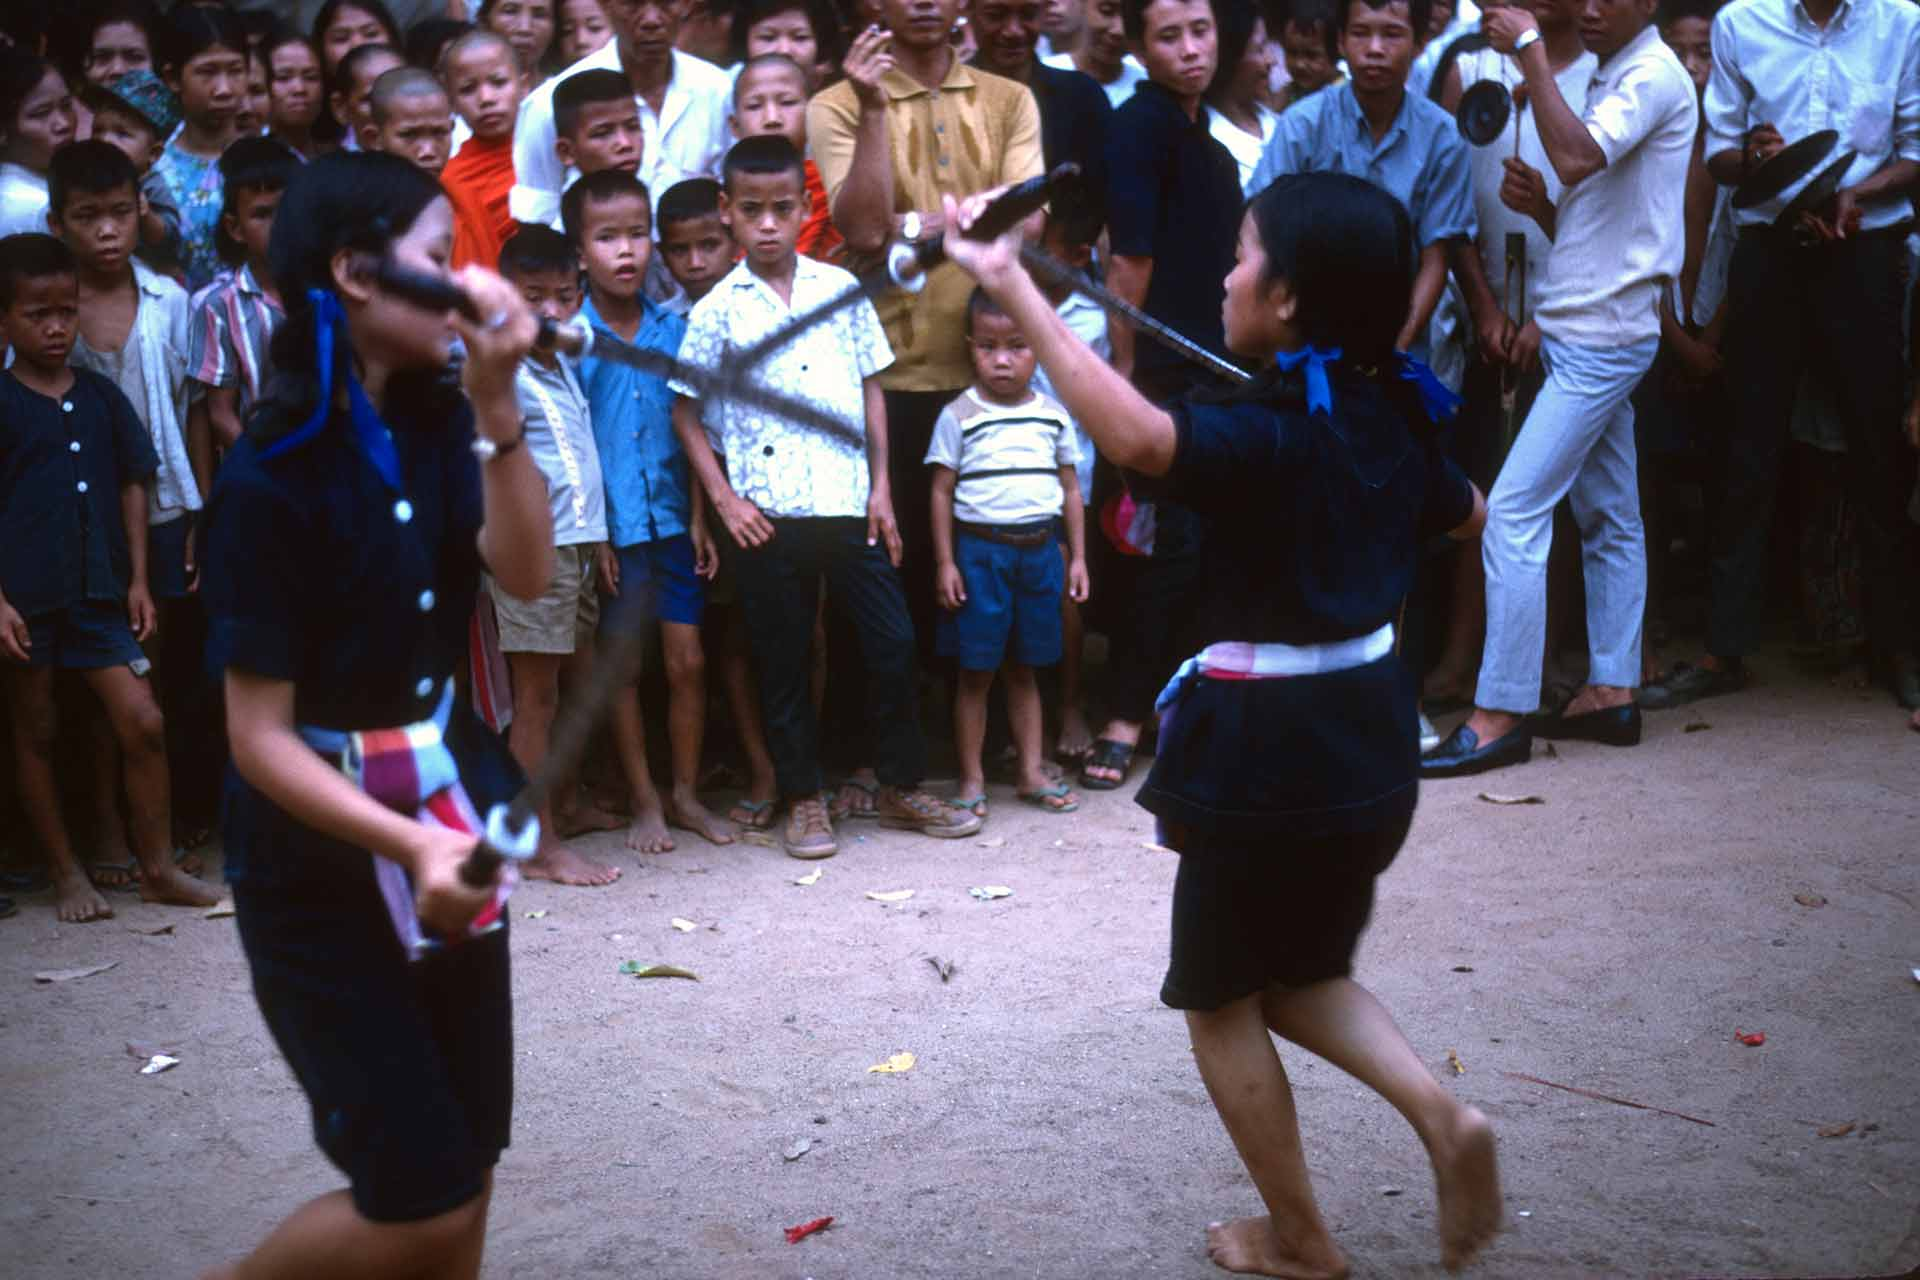 Two girls demonstrate a sword dance in barefoot in front of a crowd